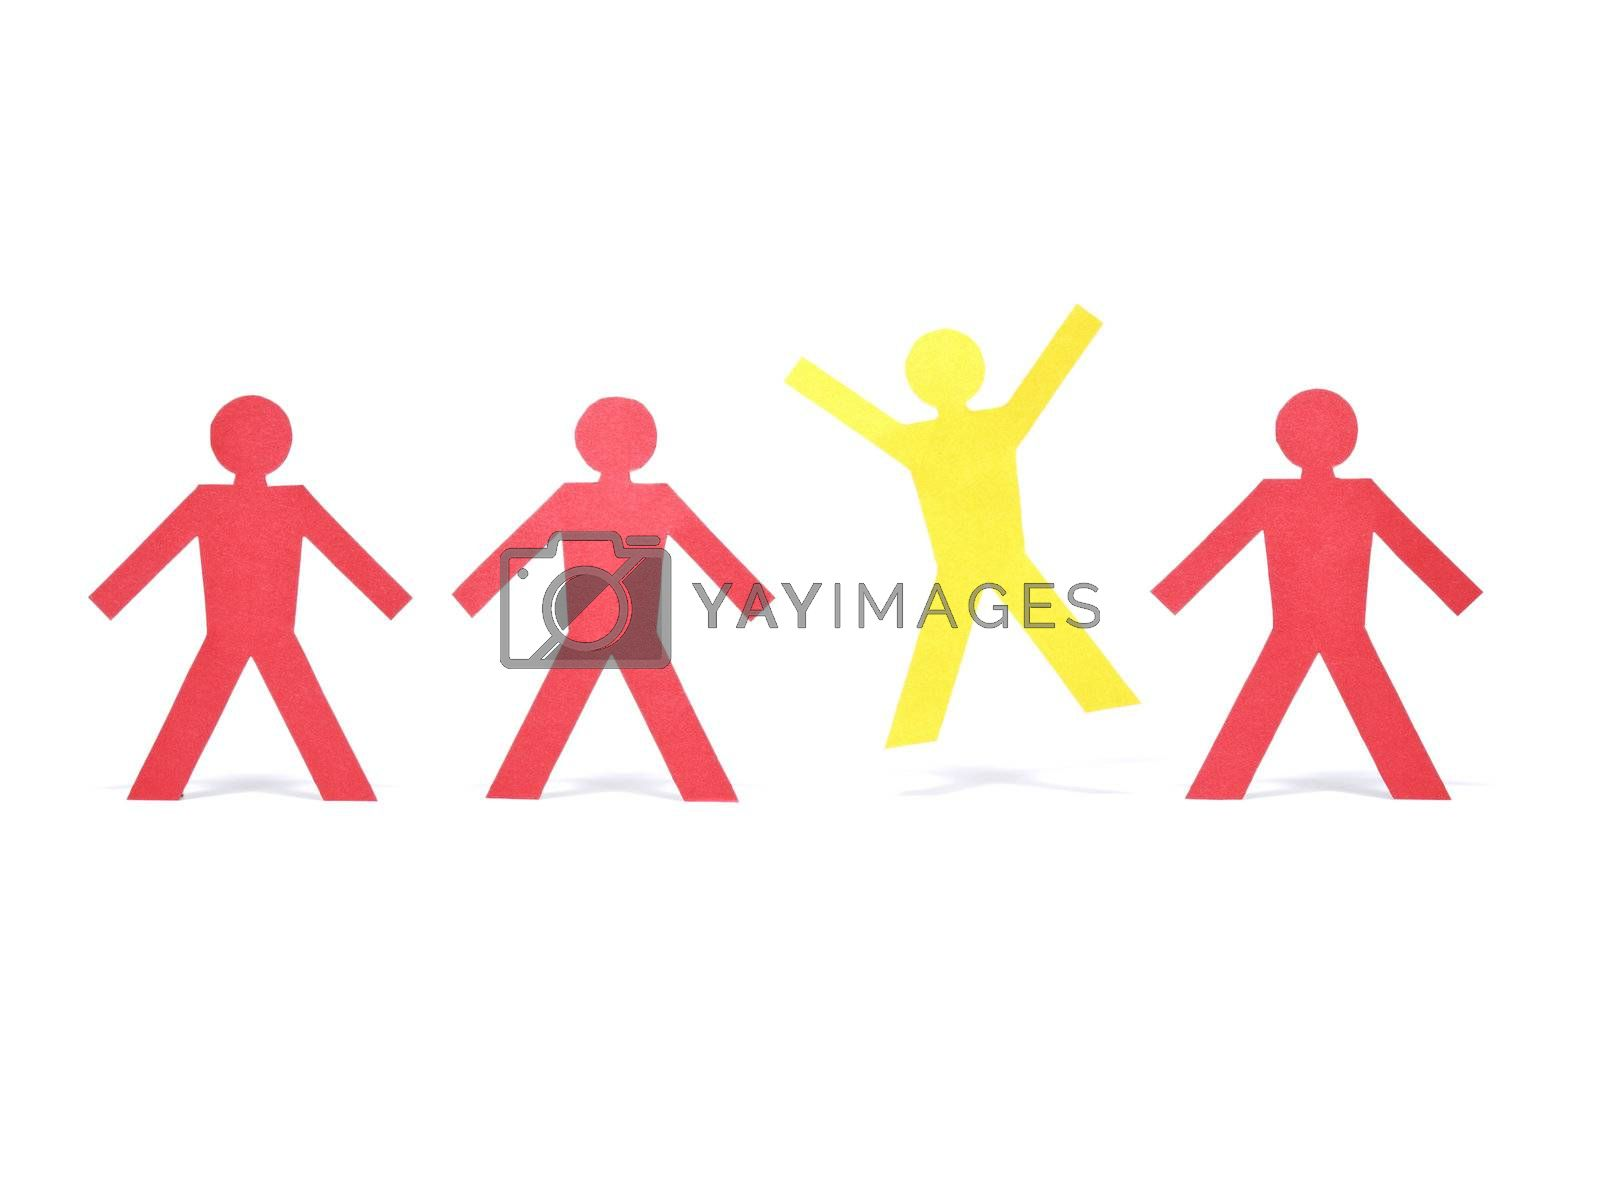 A yellow paper figure is celebrating between other red paper figures.